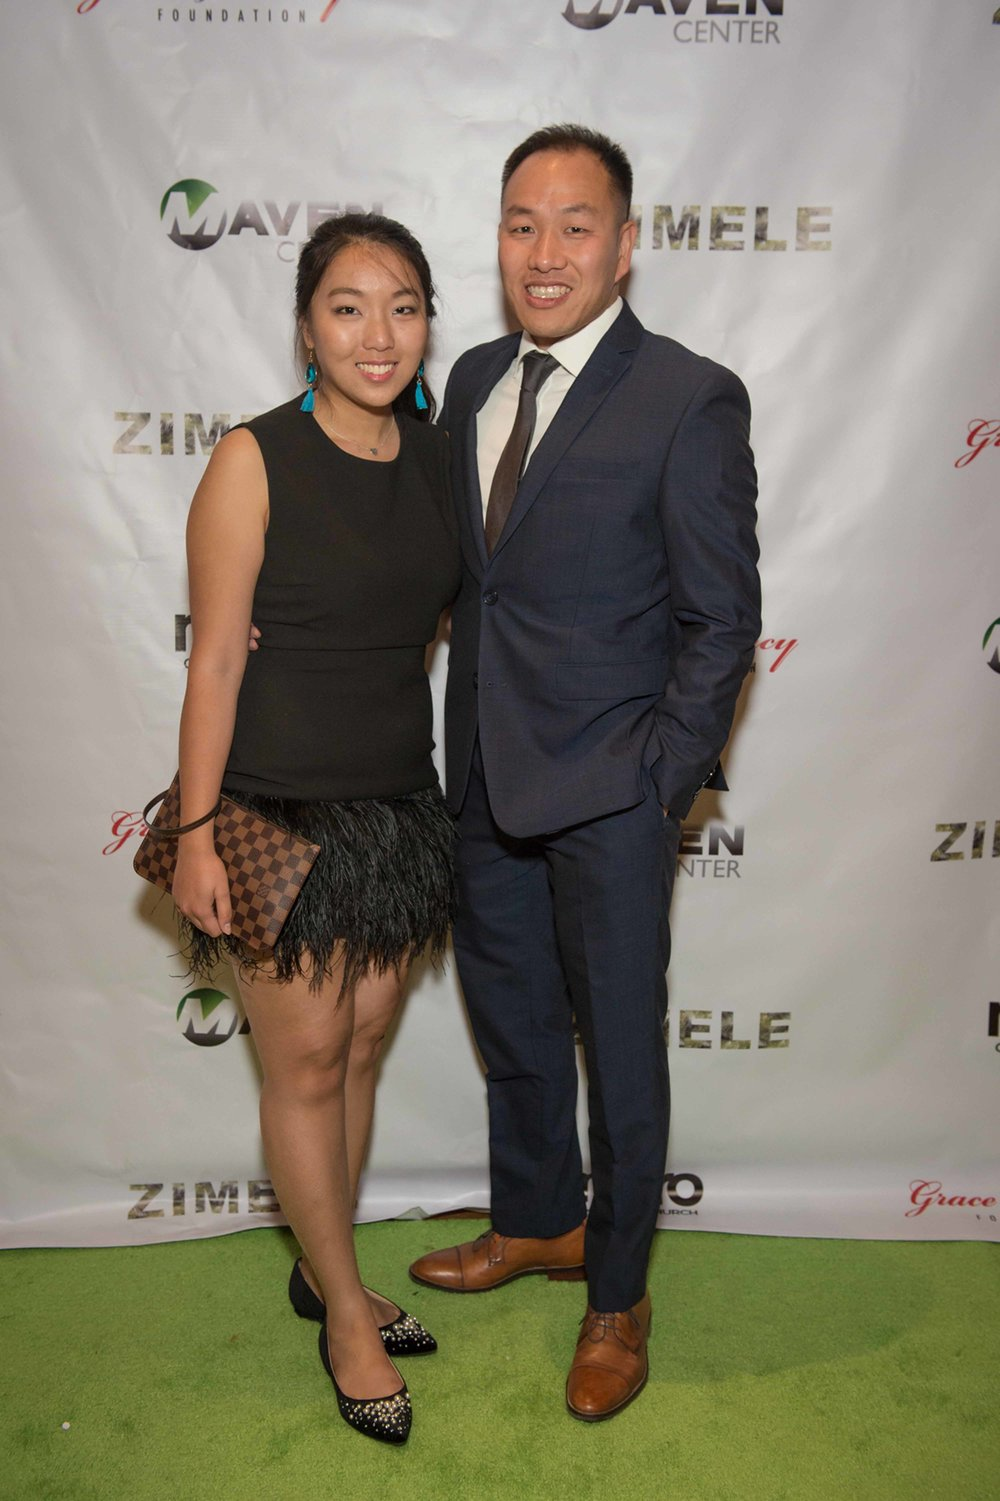 2017-10-21 Zimele USA 6th Annual Gala - Maritime Parc - Jersey City NJ_0070.jpg